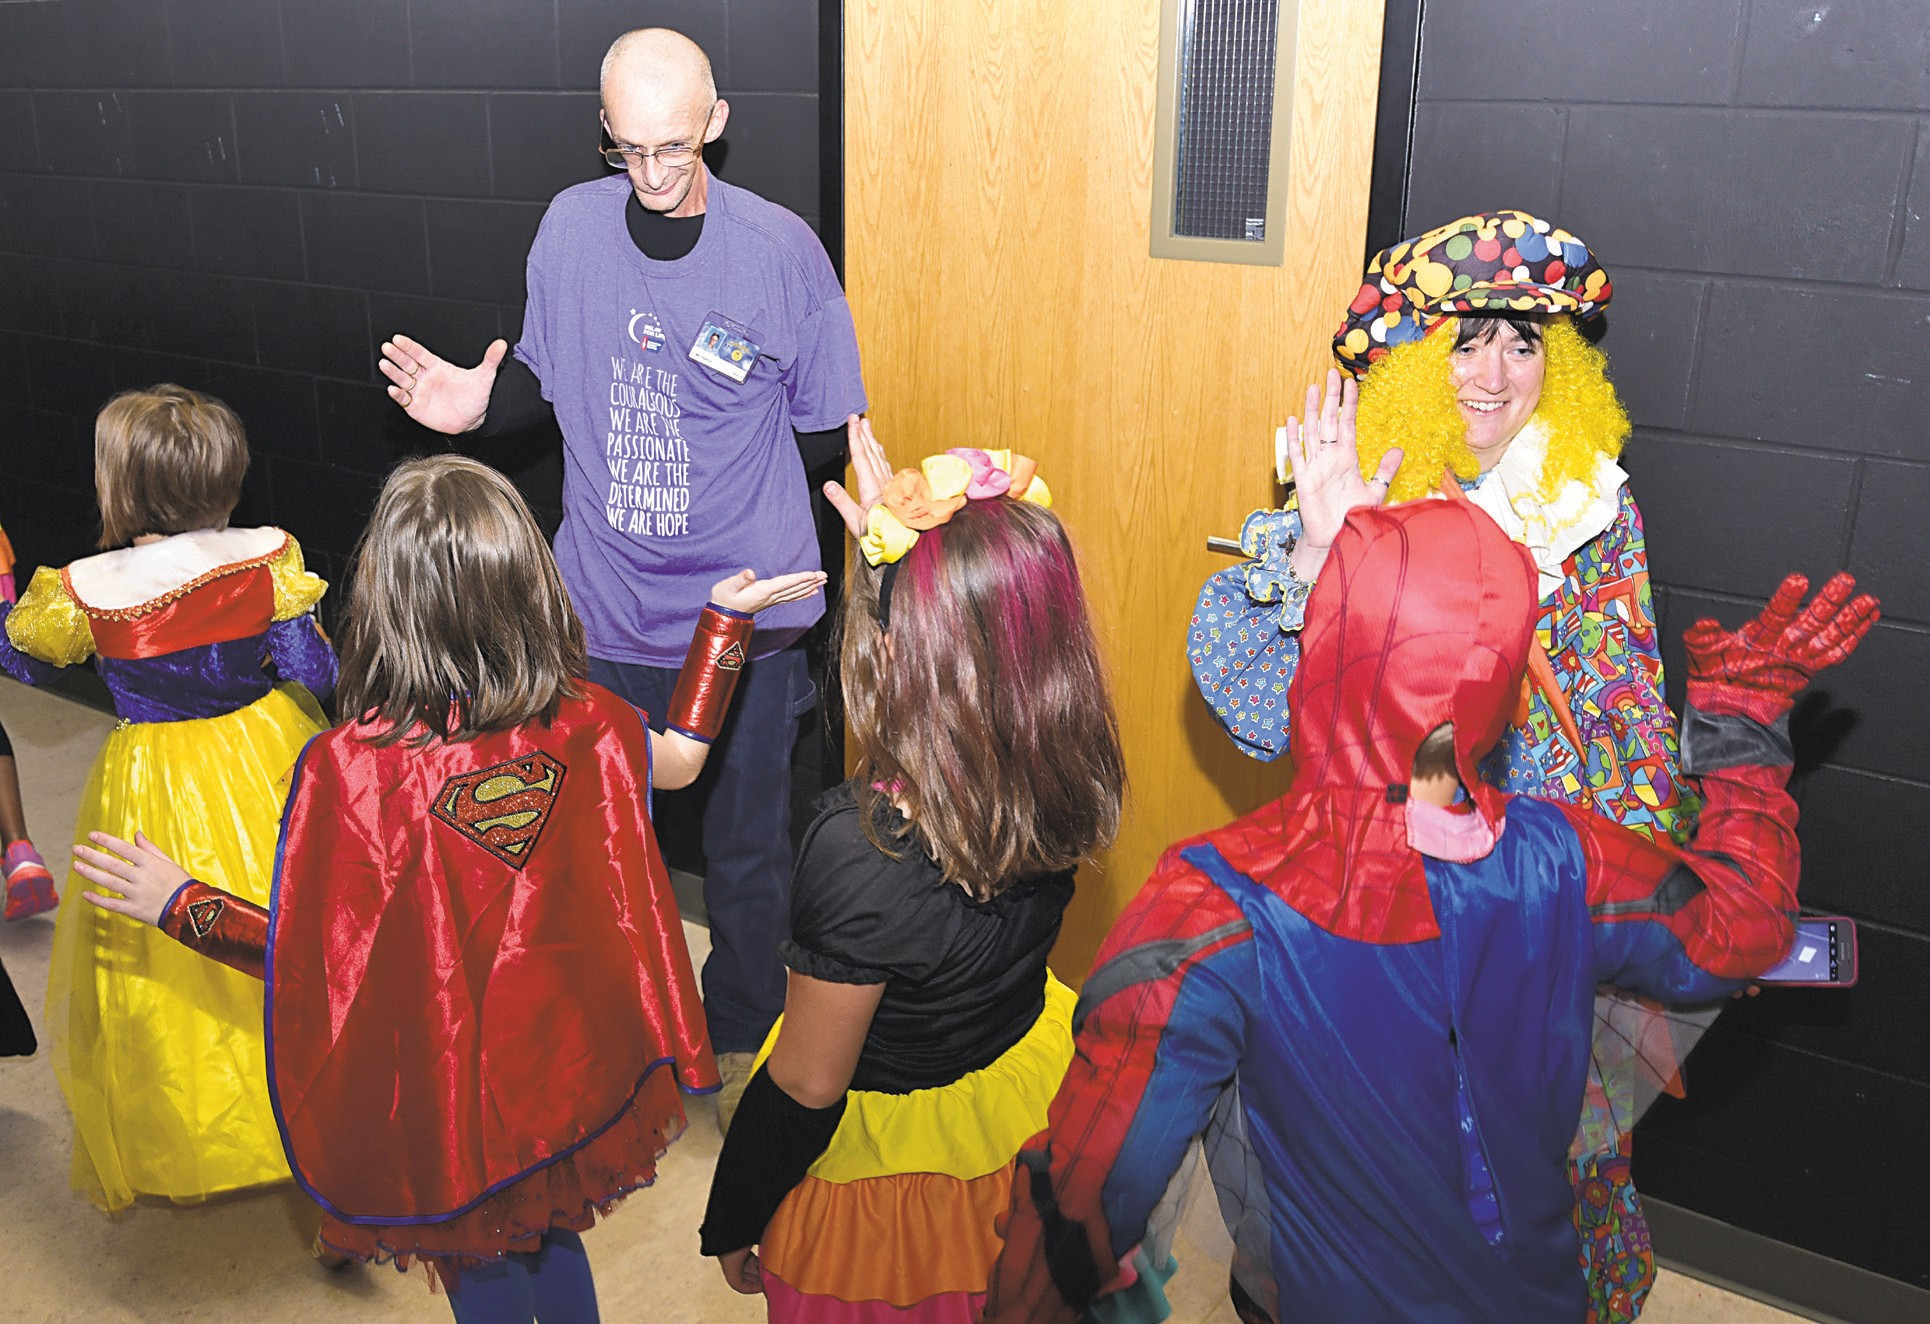 longtime volunteer popeye honored guest at roscommon relay recess